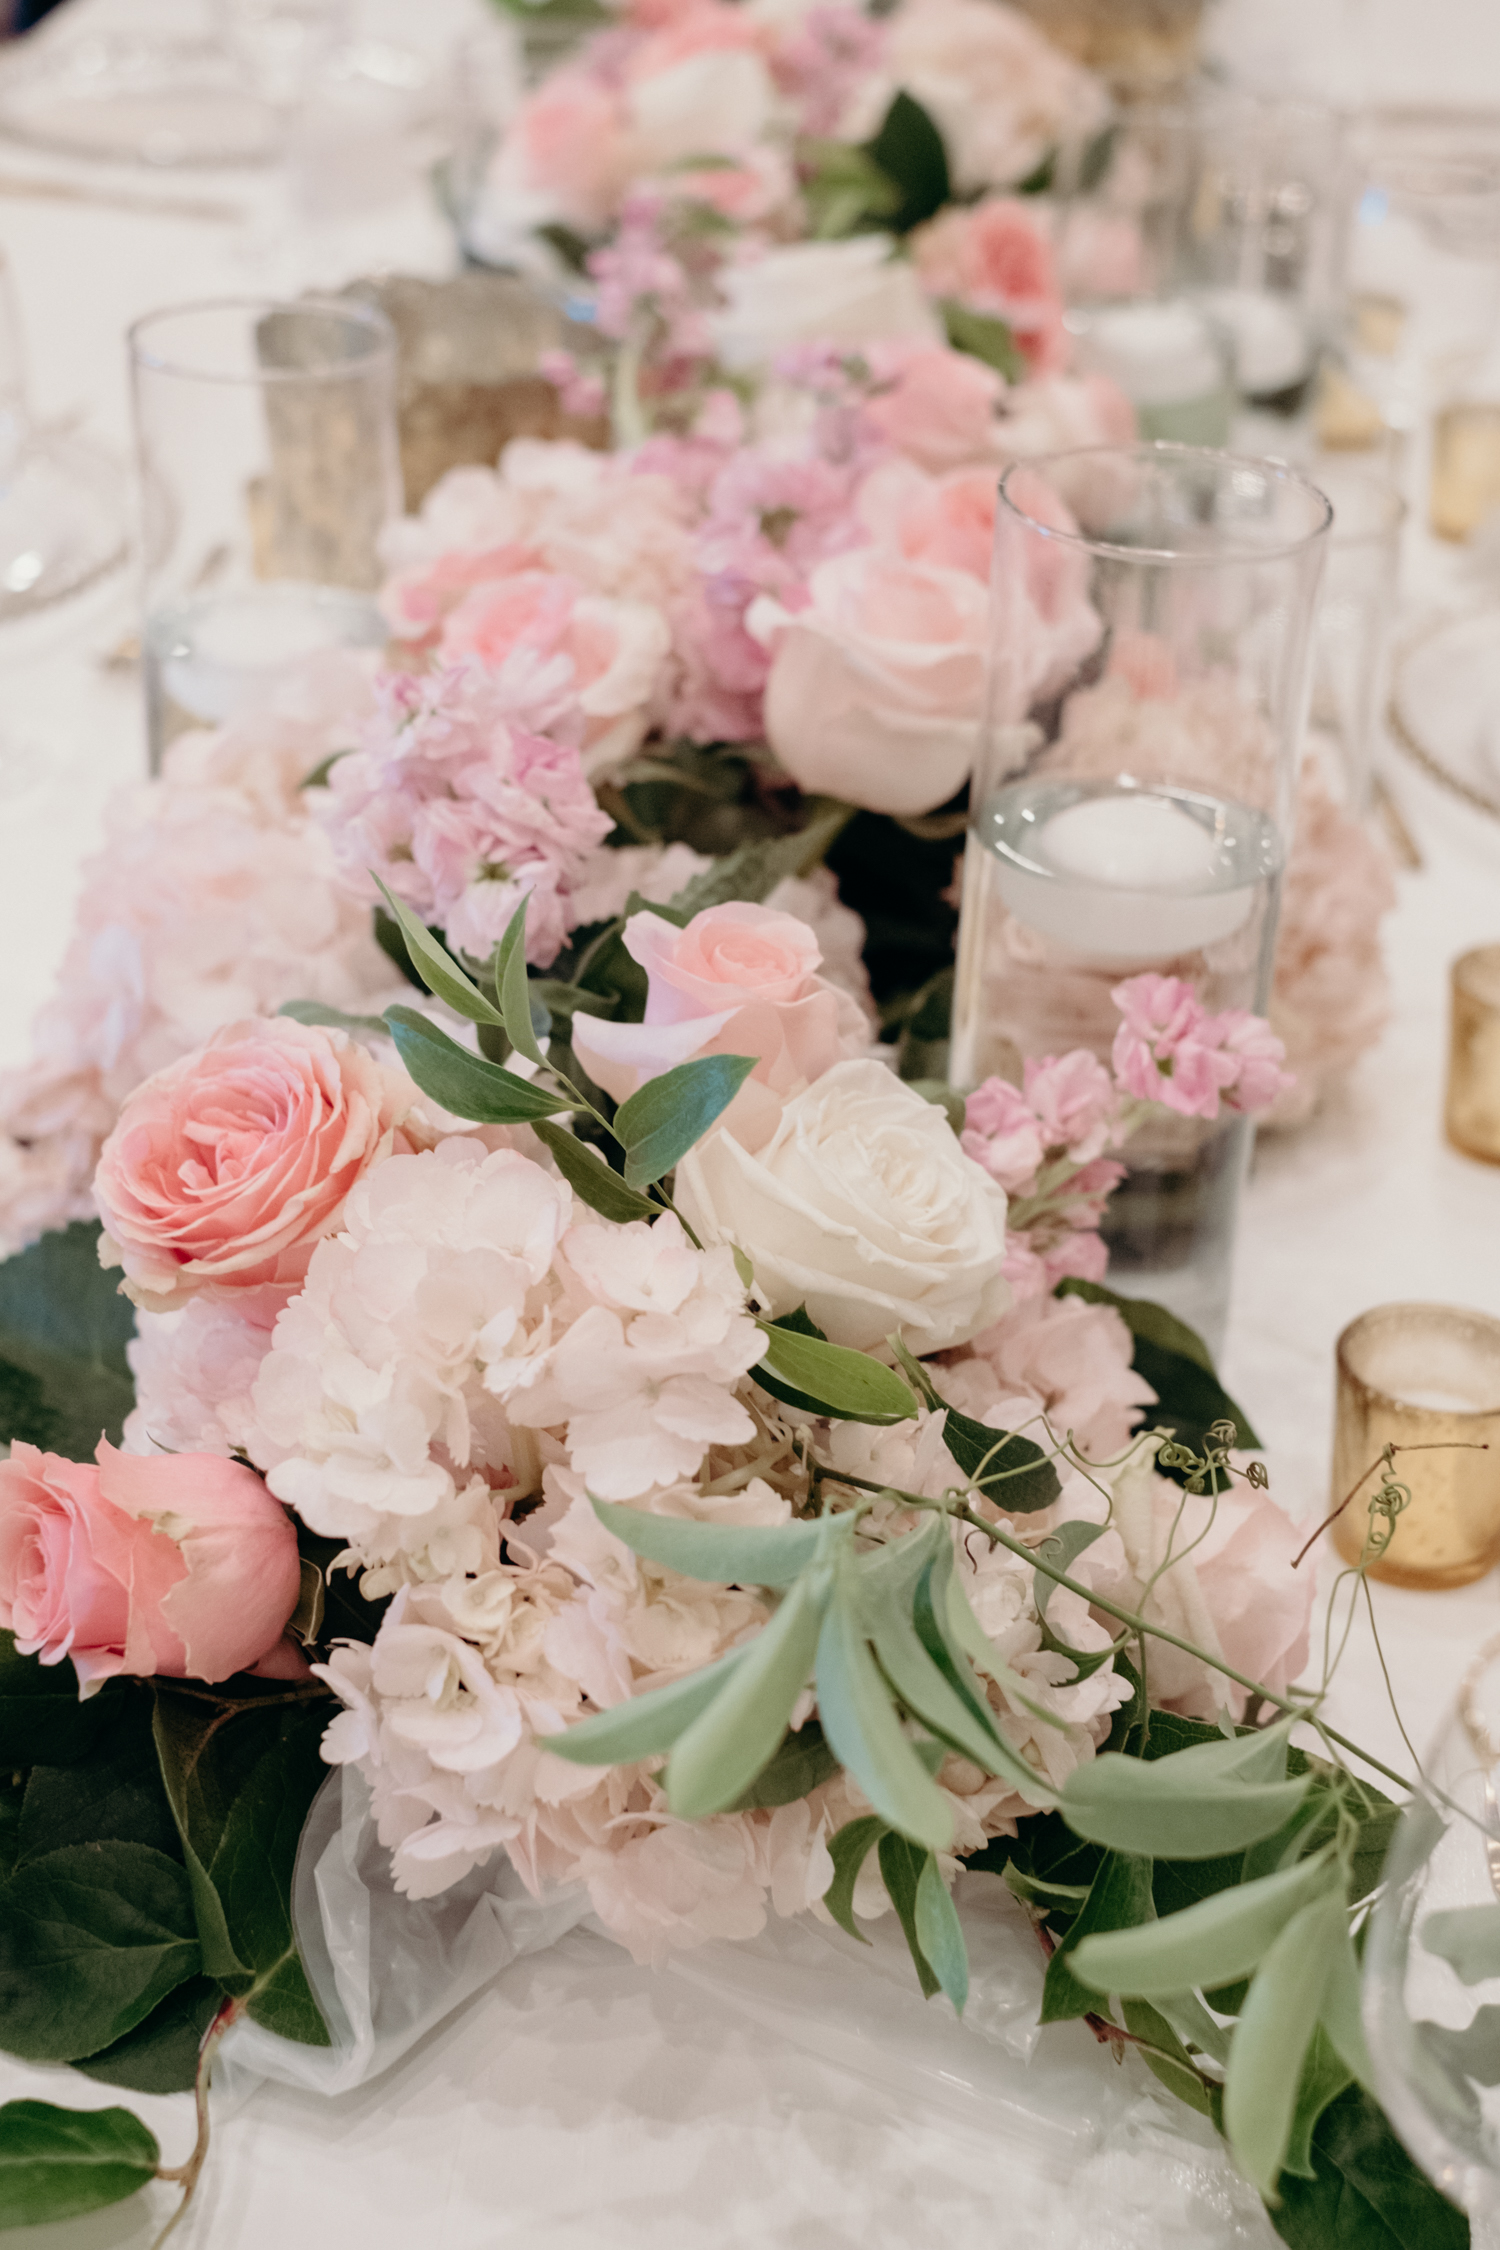 A table is decorated with pink and white flowers at a wedding reception at Lansdowne Resort.